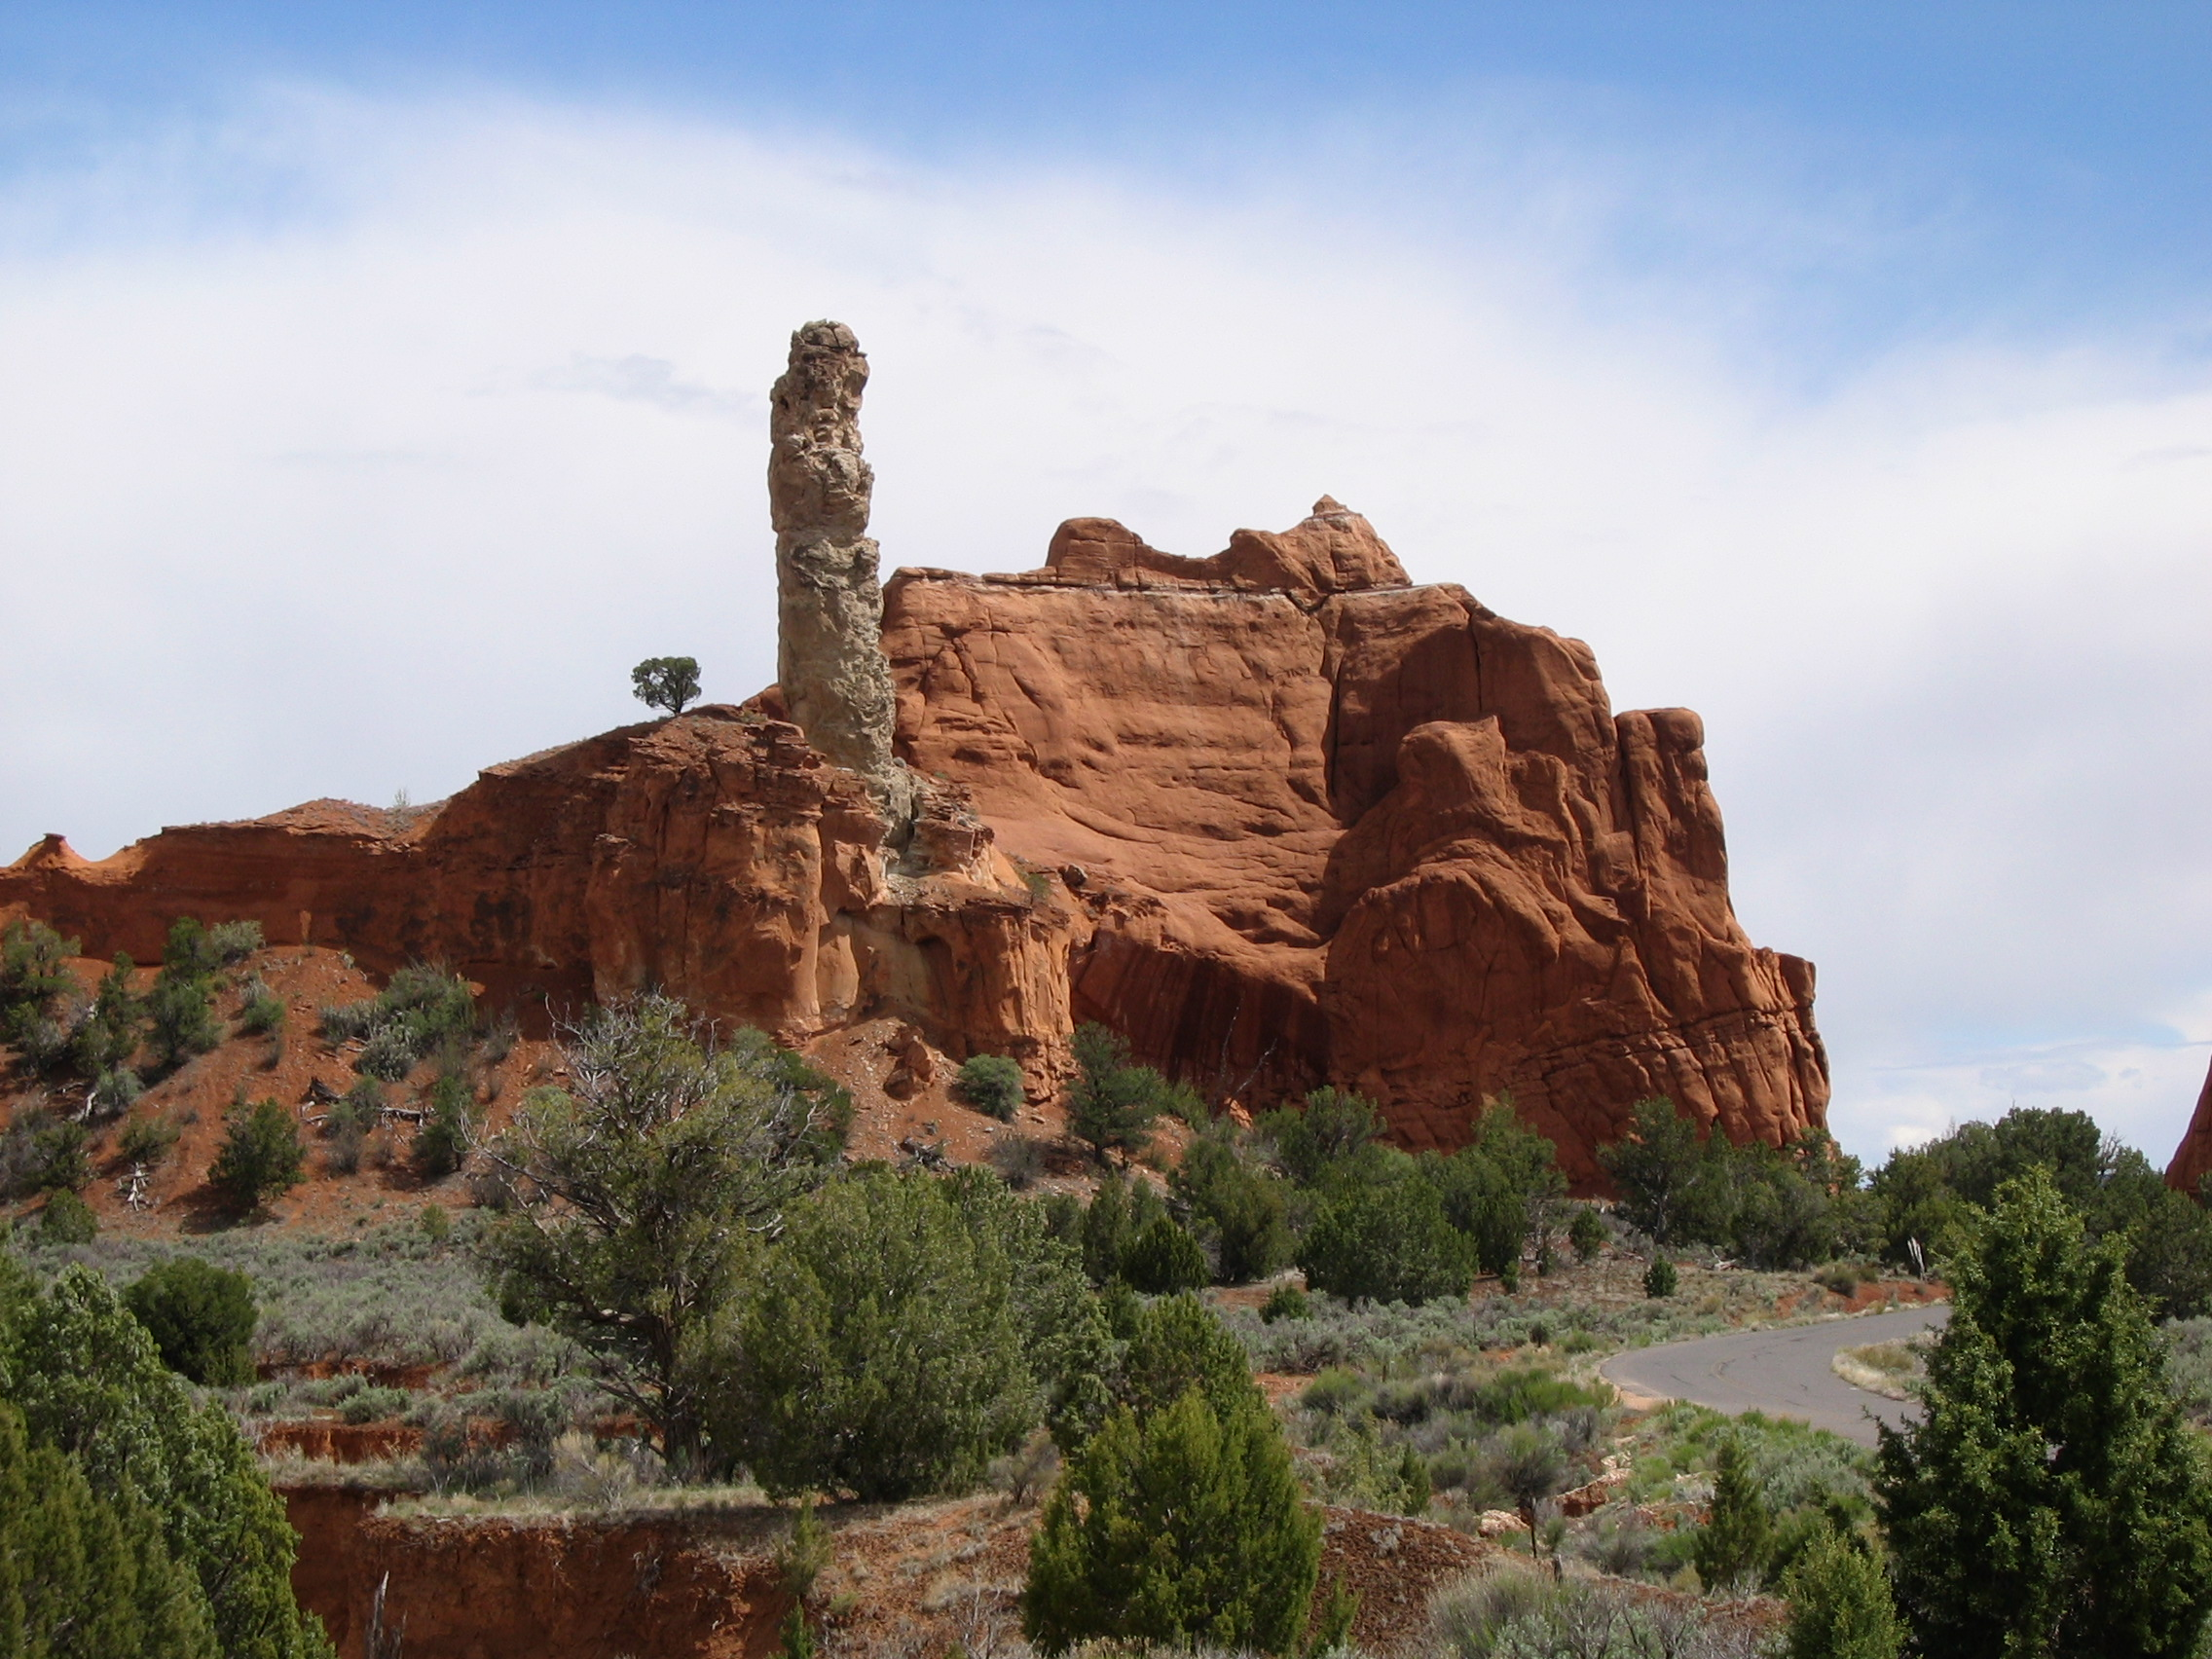 """The spire known as """"The Patriarch"""" standing out among other rock outcroppings at Kodachrome Basin State Park, Utah, May 3, 2005  photo courtesy of Kodachrome Basin State Park, St. George News"""